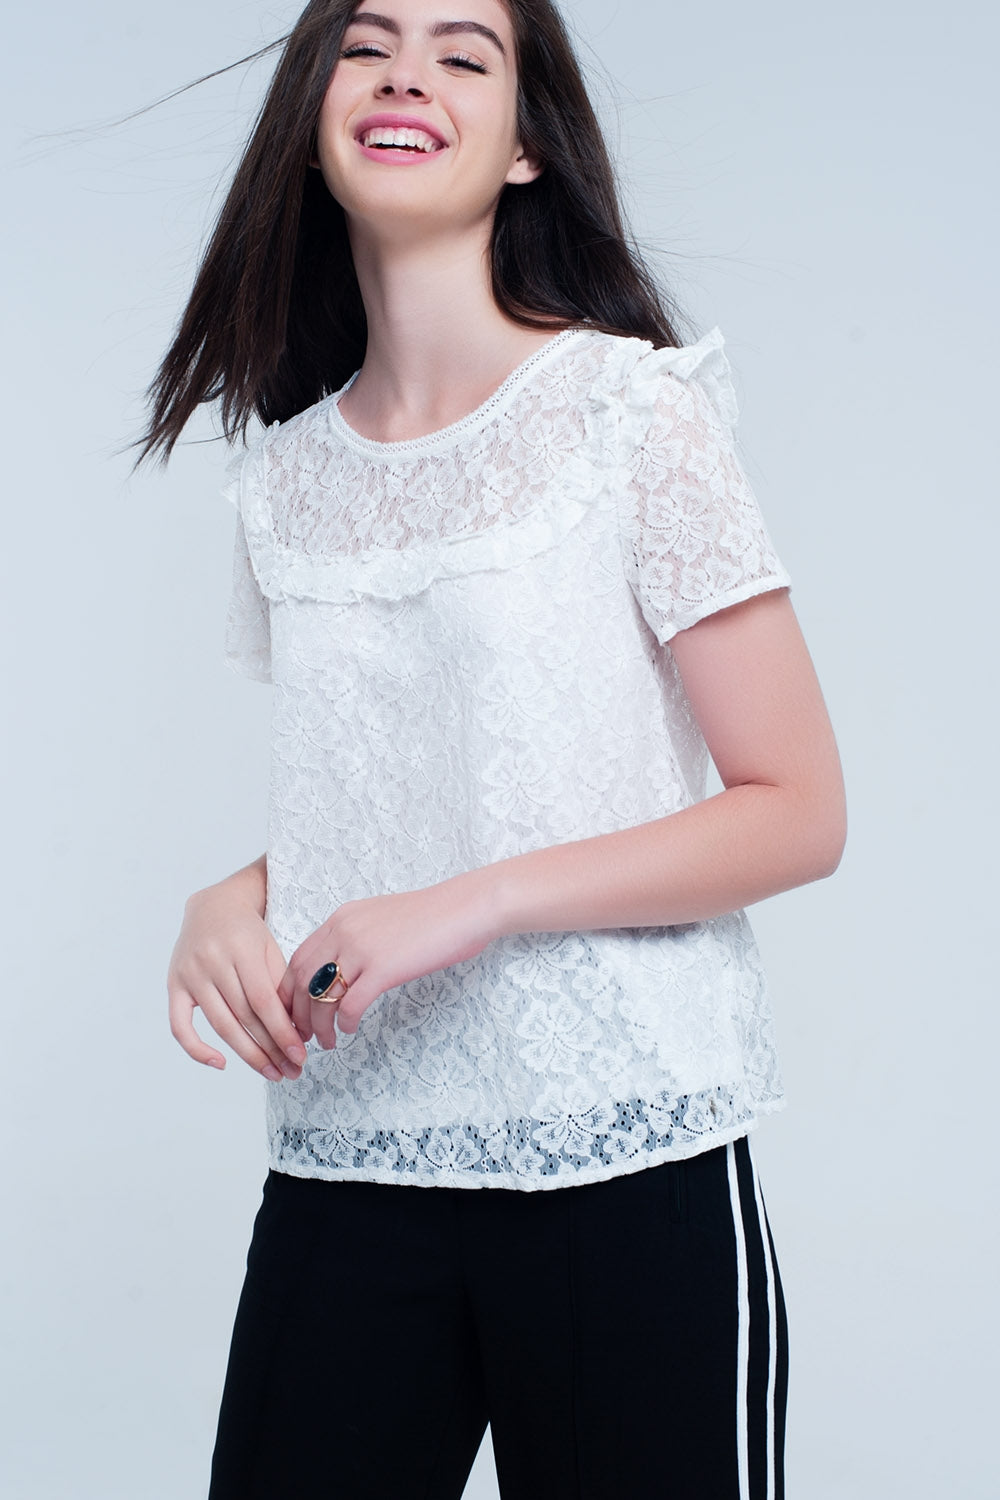 White Embroidered Top-Women - Apparel - Shirts - Blouses-Product Details White embroidered top. Short sleeves. Detail of an opening in the back. Detail of ruffles on the front and back.-Keyomi-Sook